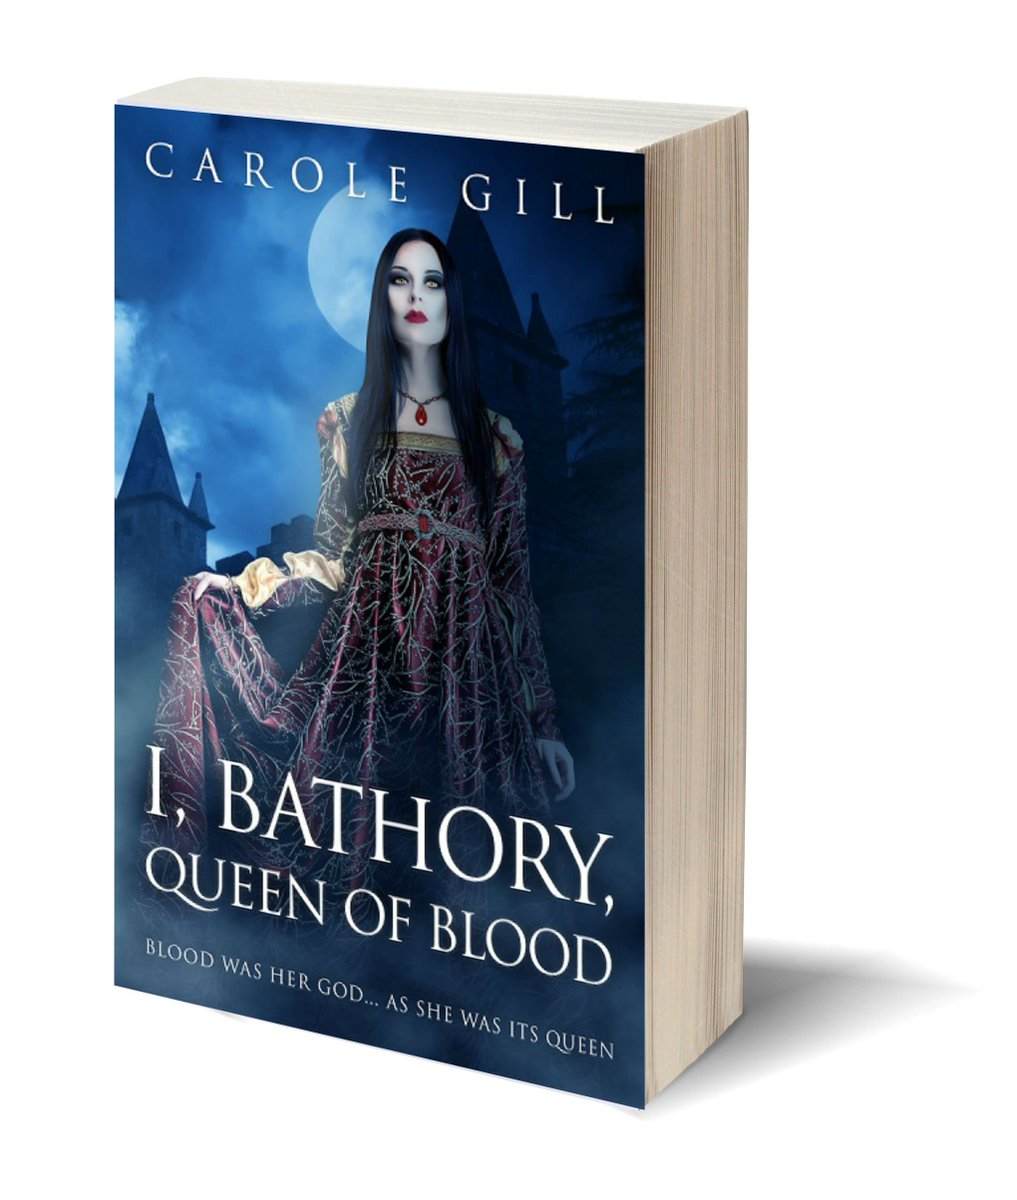 The story of Damita, previously known as Erzsebet Bathory - The Blood Countess. ★I, BATHORY, QUEEN OF BLOOD★